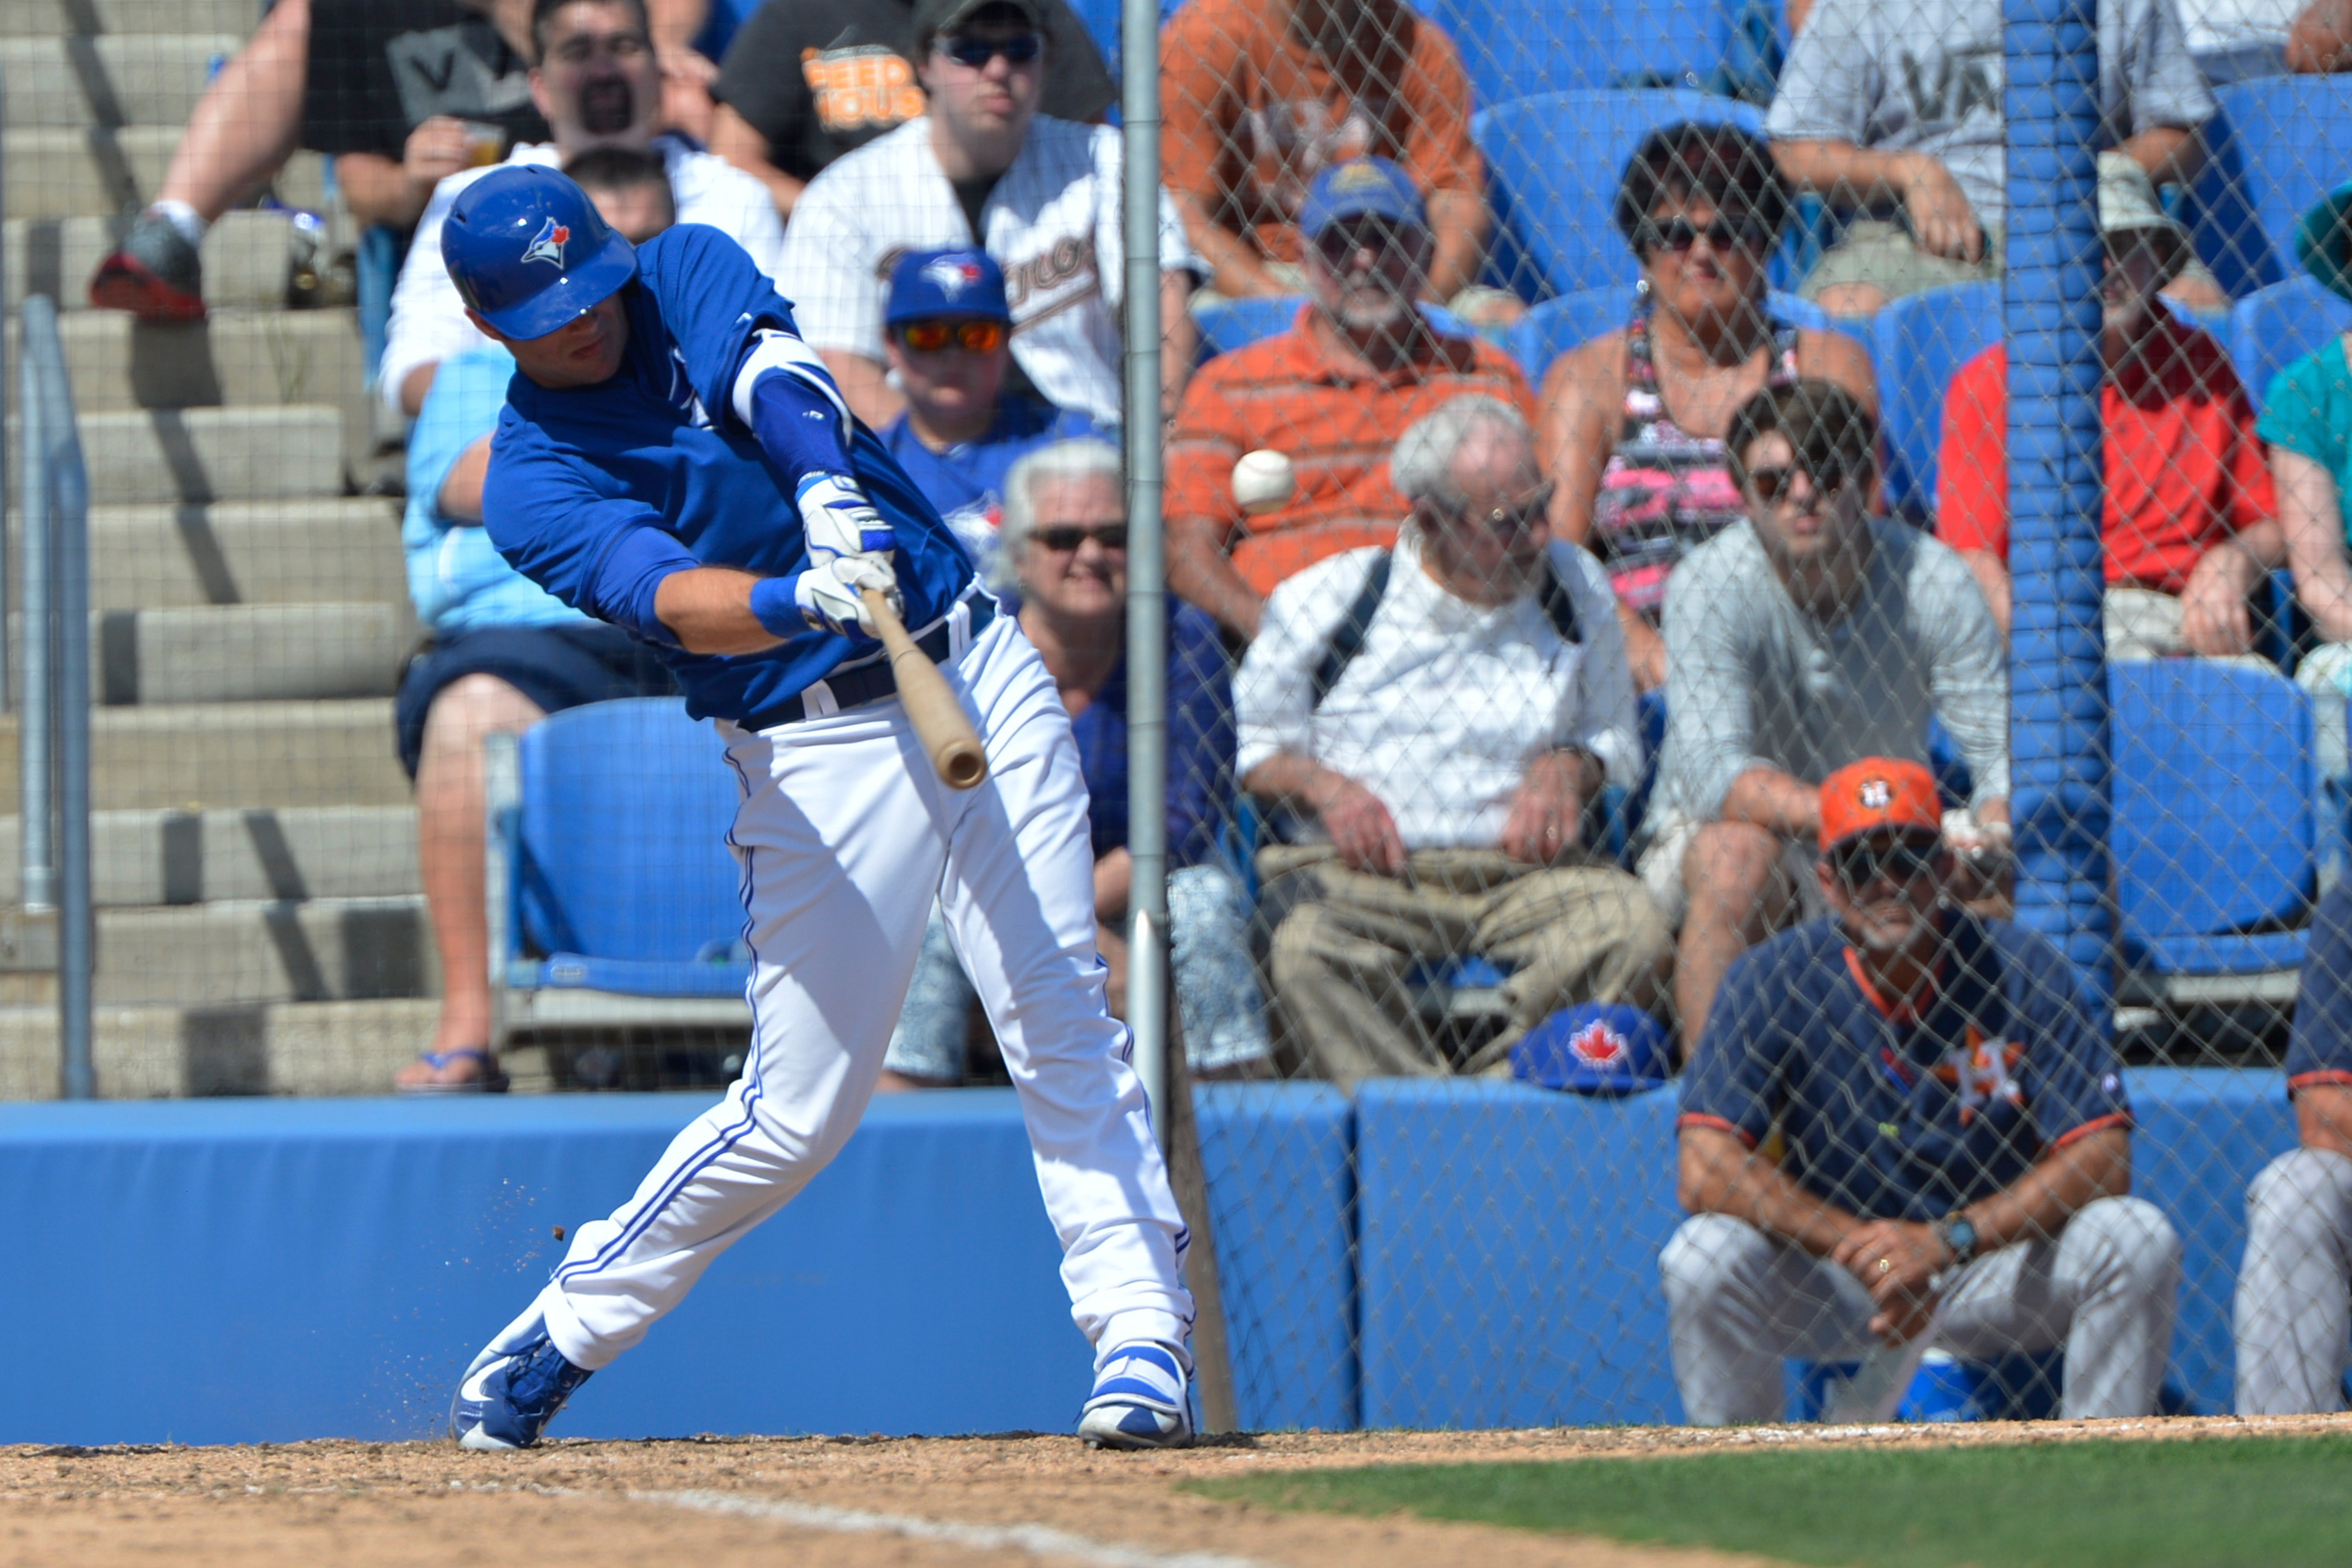 Matt Hague continues to lead the Baby Jays in OPS through week 8